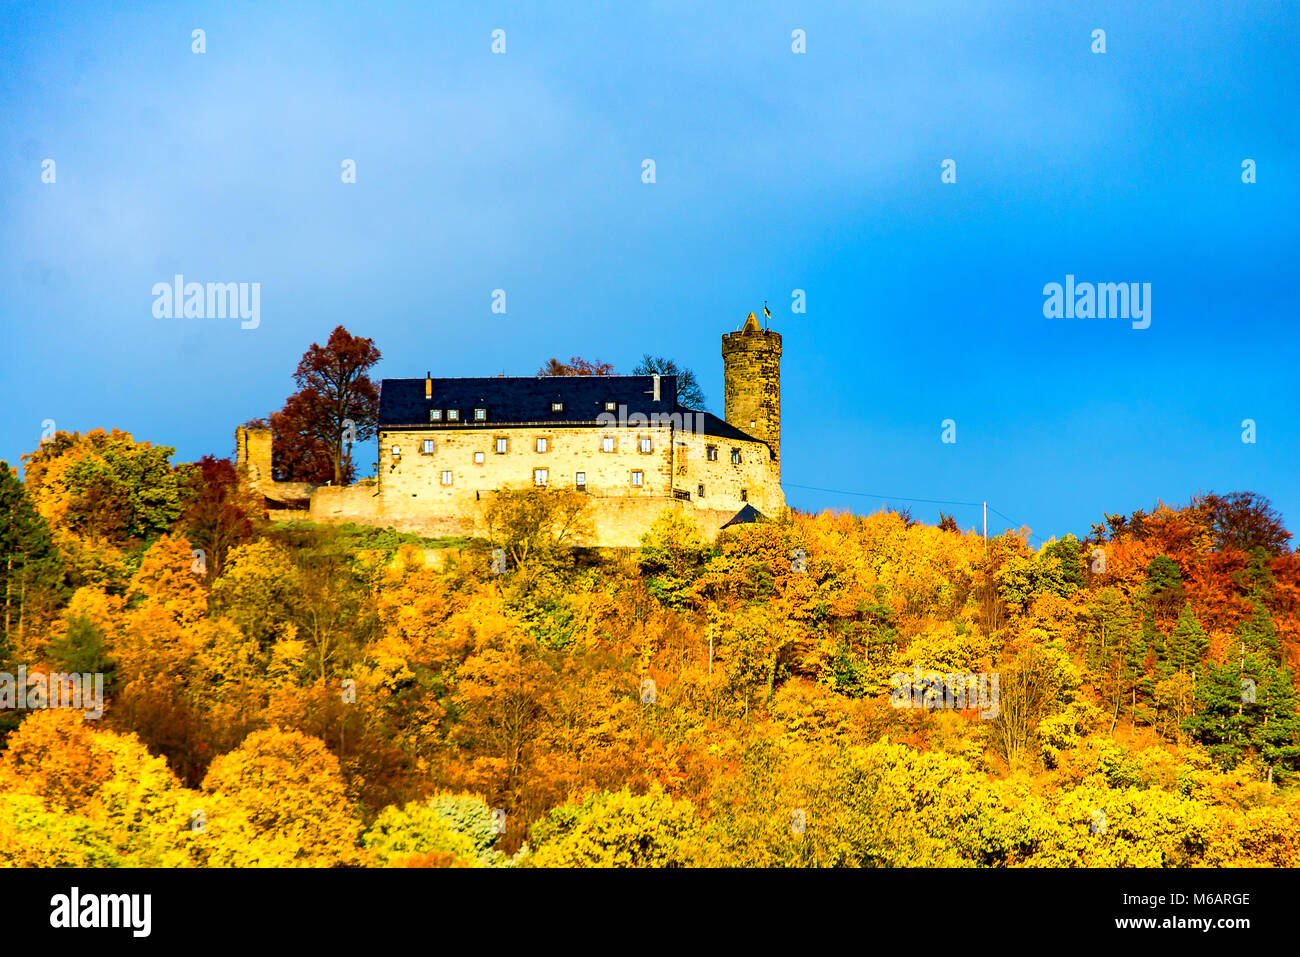 Greifenstein stockfotos greifenstein bilder alamy for Burg greifenstein bad blankenburg